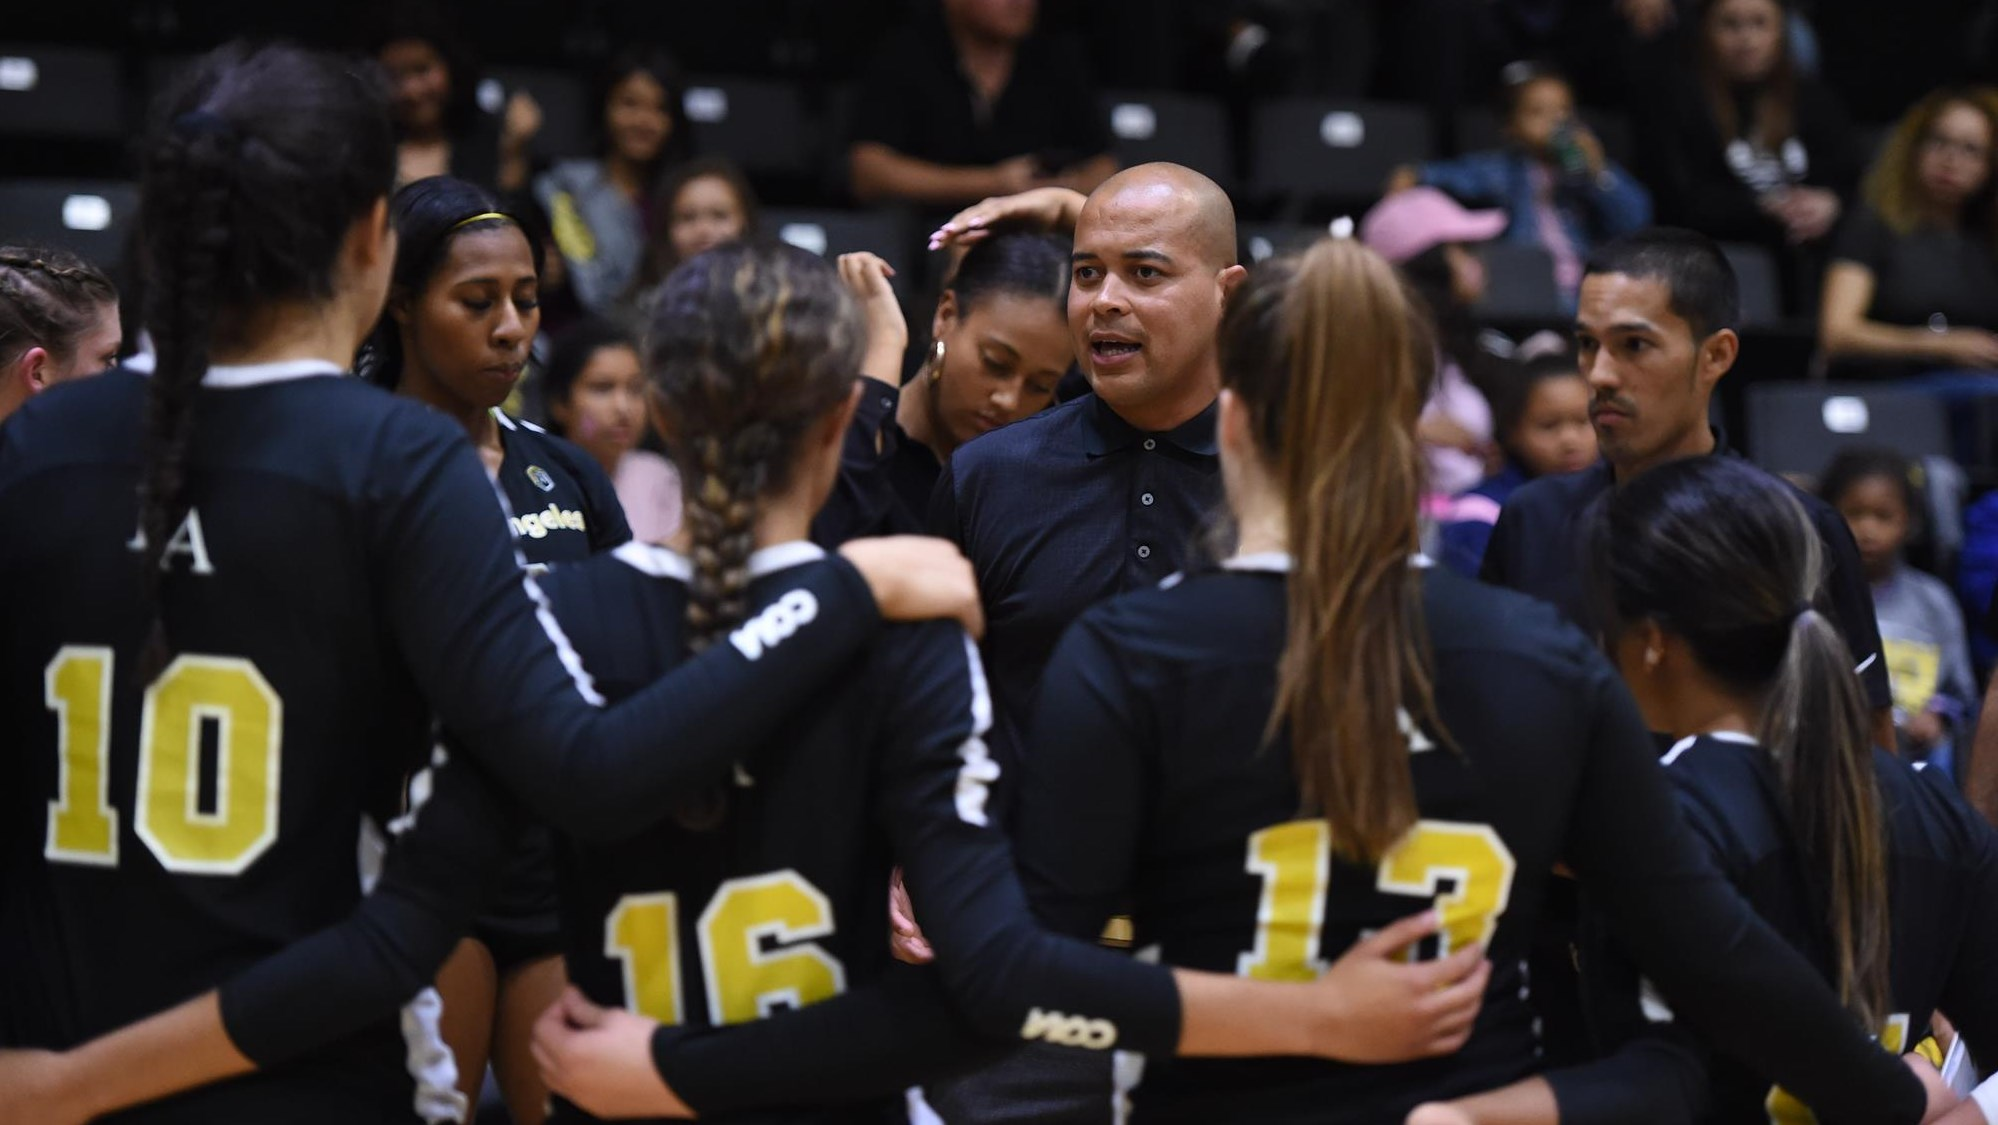 Golden Eagles To Host Volleyball Summer Camp Cal State La Athletics